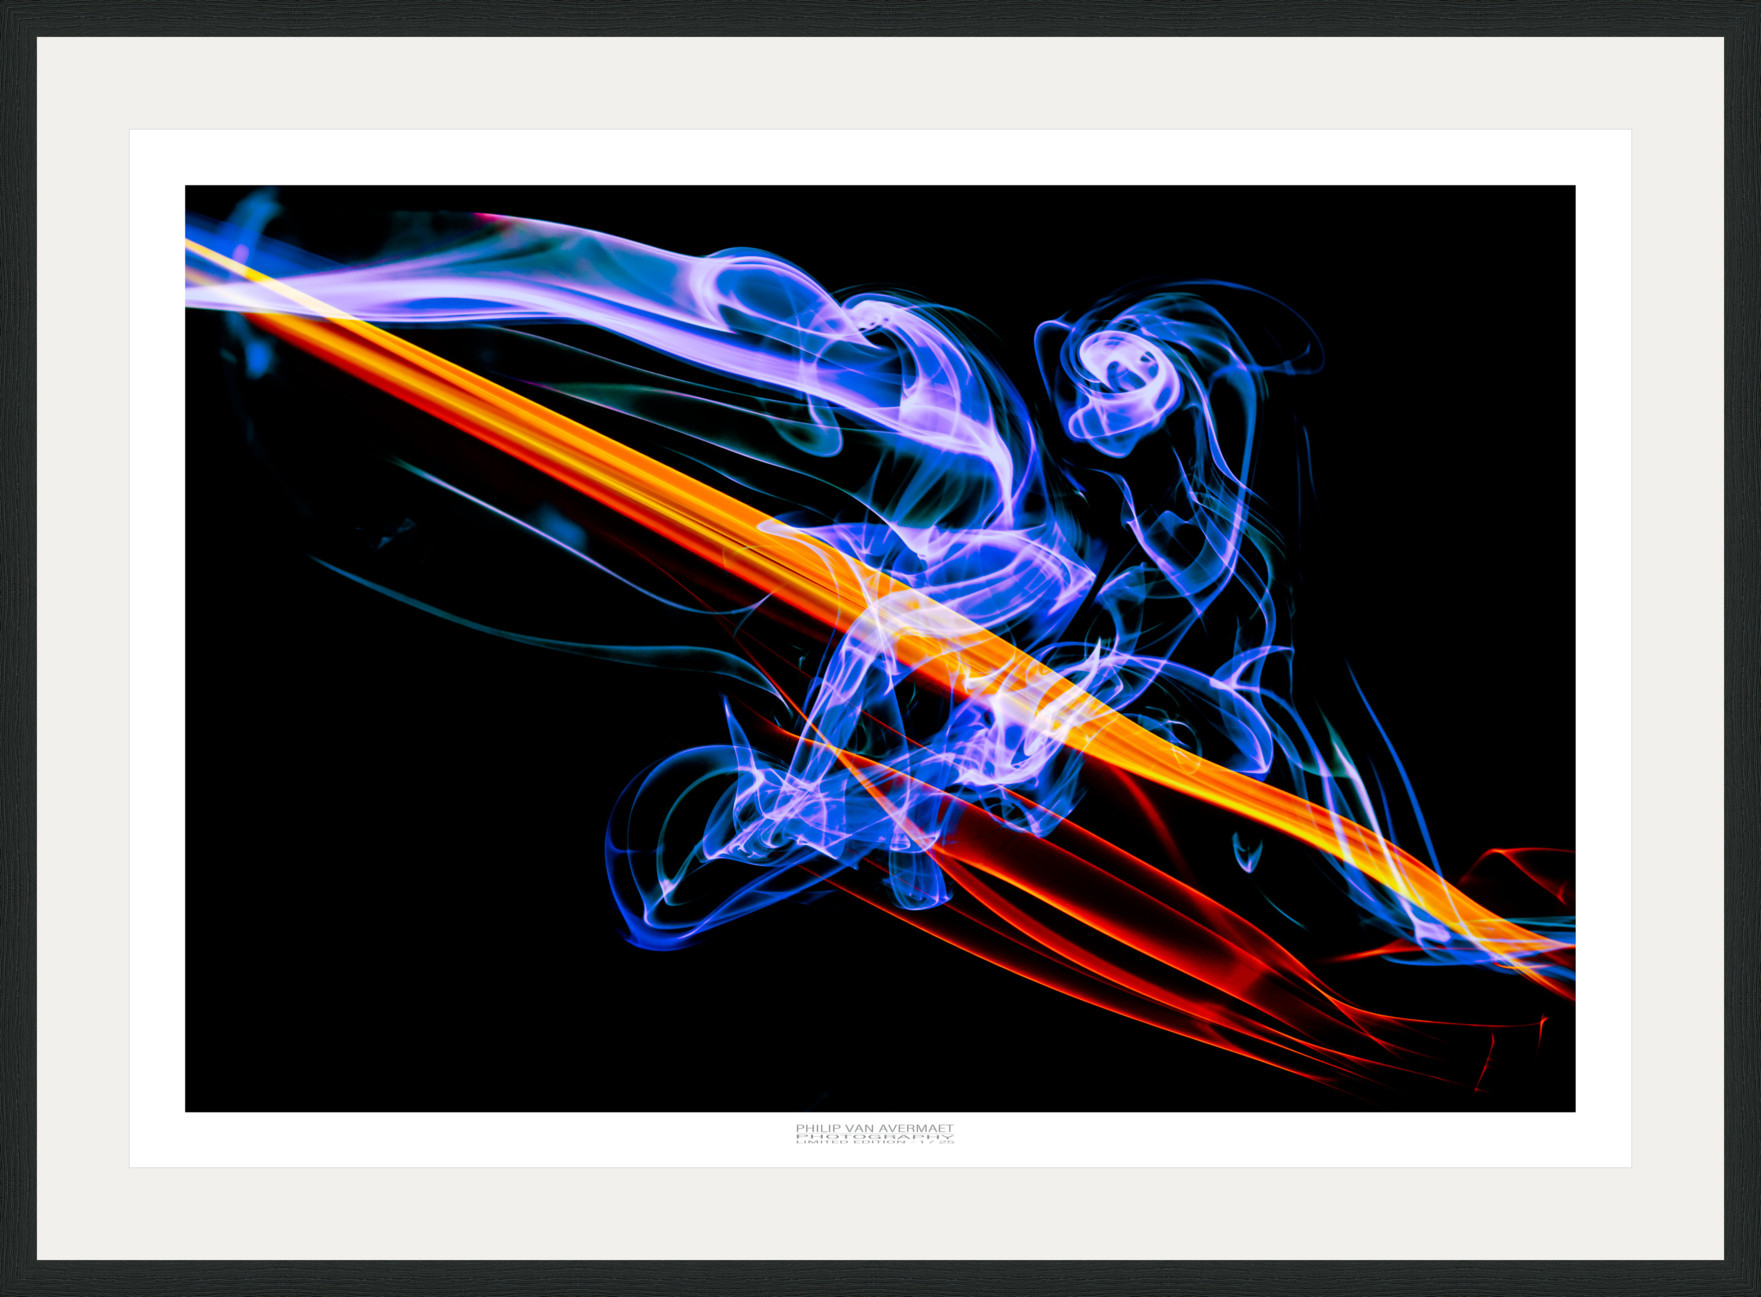 philip van avermaet,avermaet,photography,color,fineart,colorful,imagination,abstract,modern,inkjet,limited edition,print only,framed